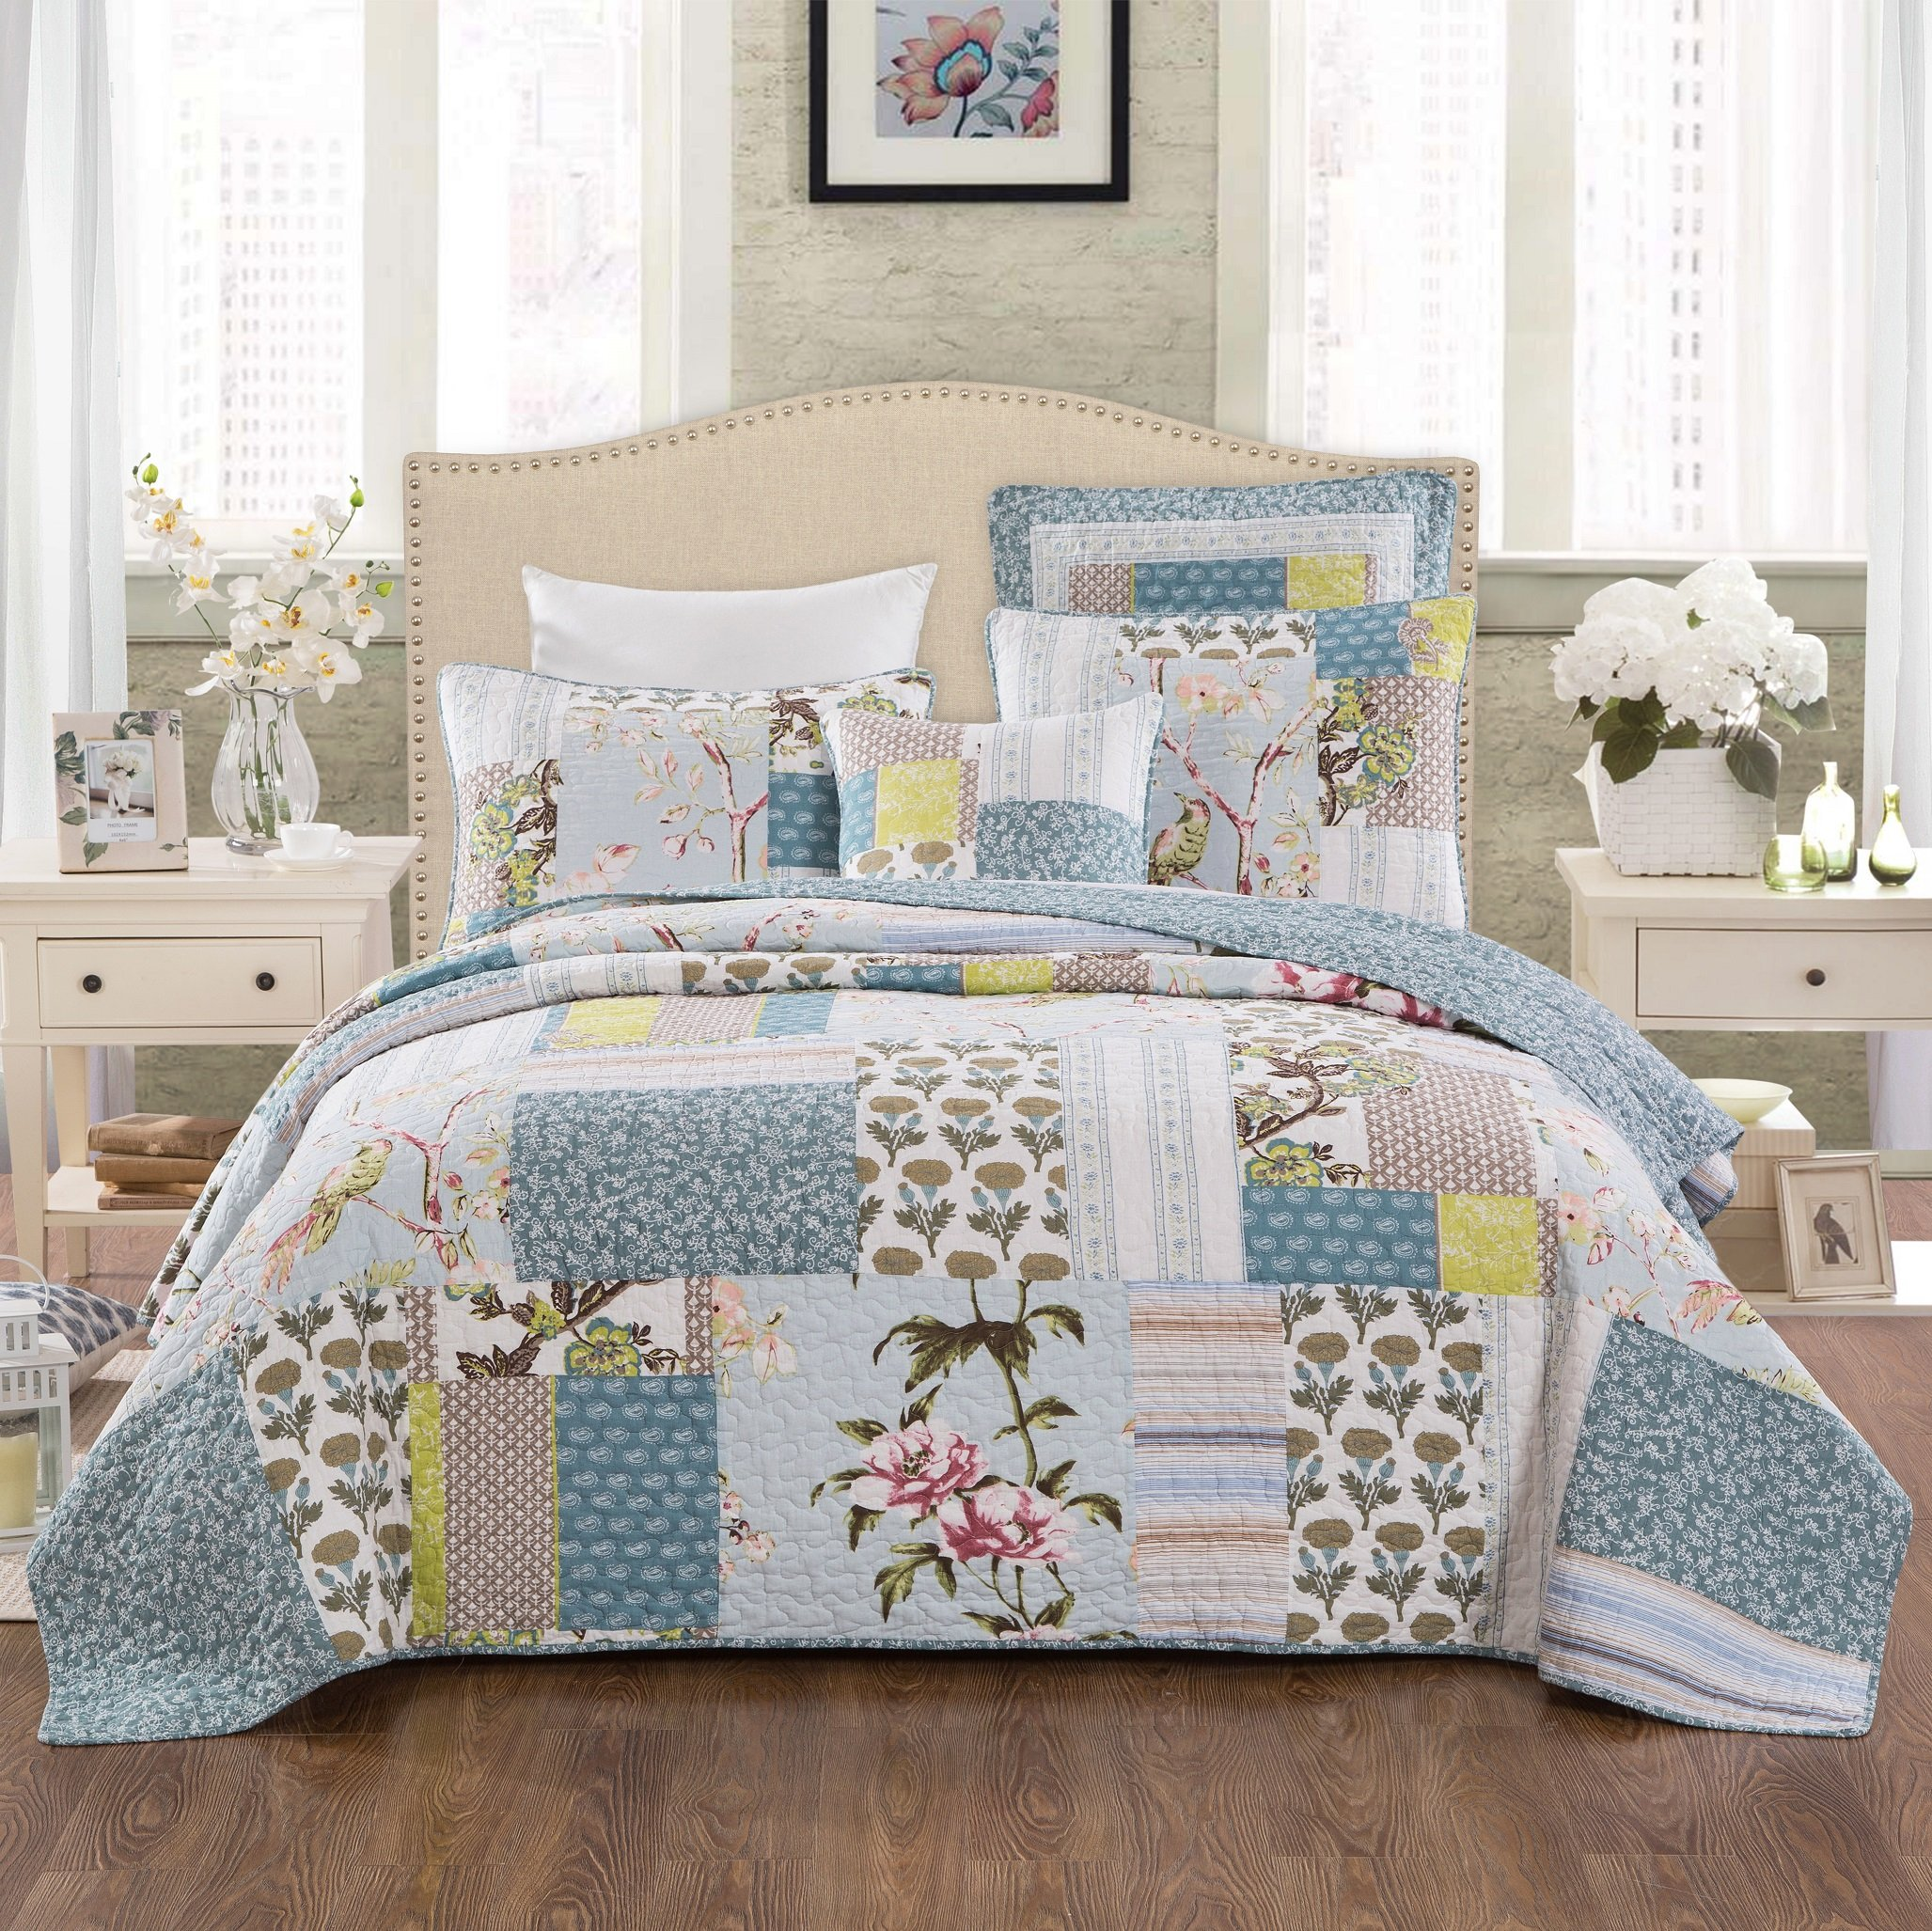 Tache Home Fashion Sky Breeze Patchwork Quilted Coverlet Bedspread Set - Bright Vibrant Multi Colorful Pastel Blue Grey Floral Print - King - 3-Pieces by Tache Home Fashion